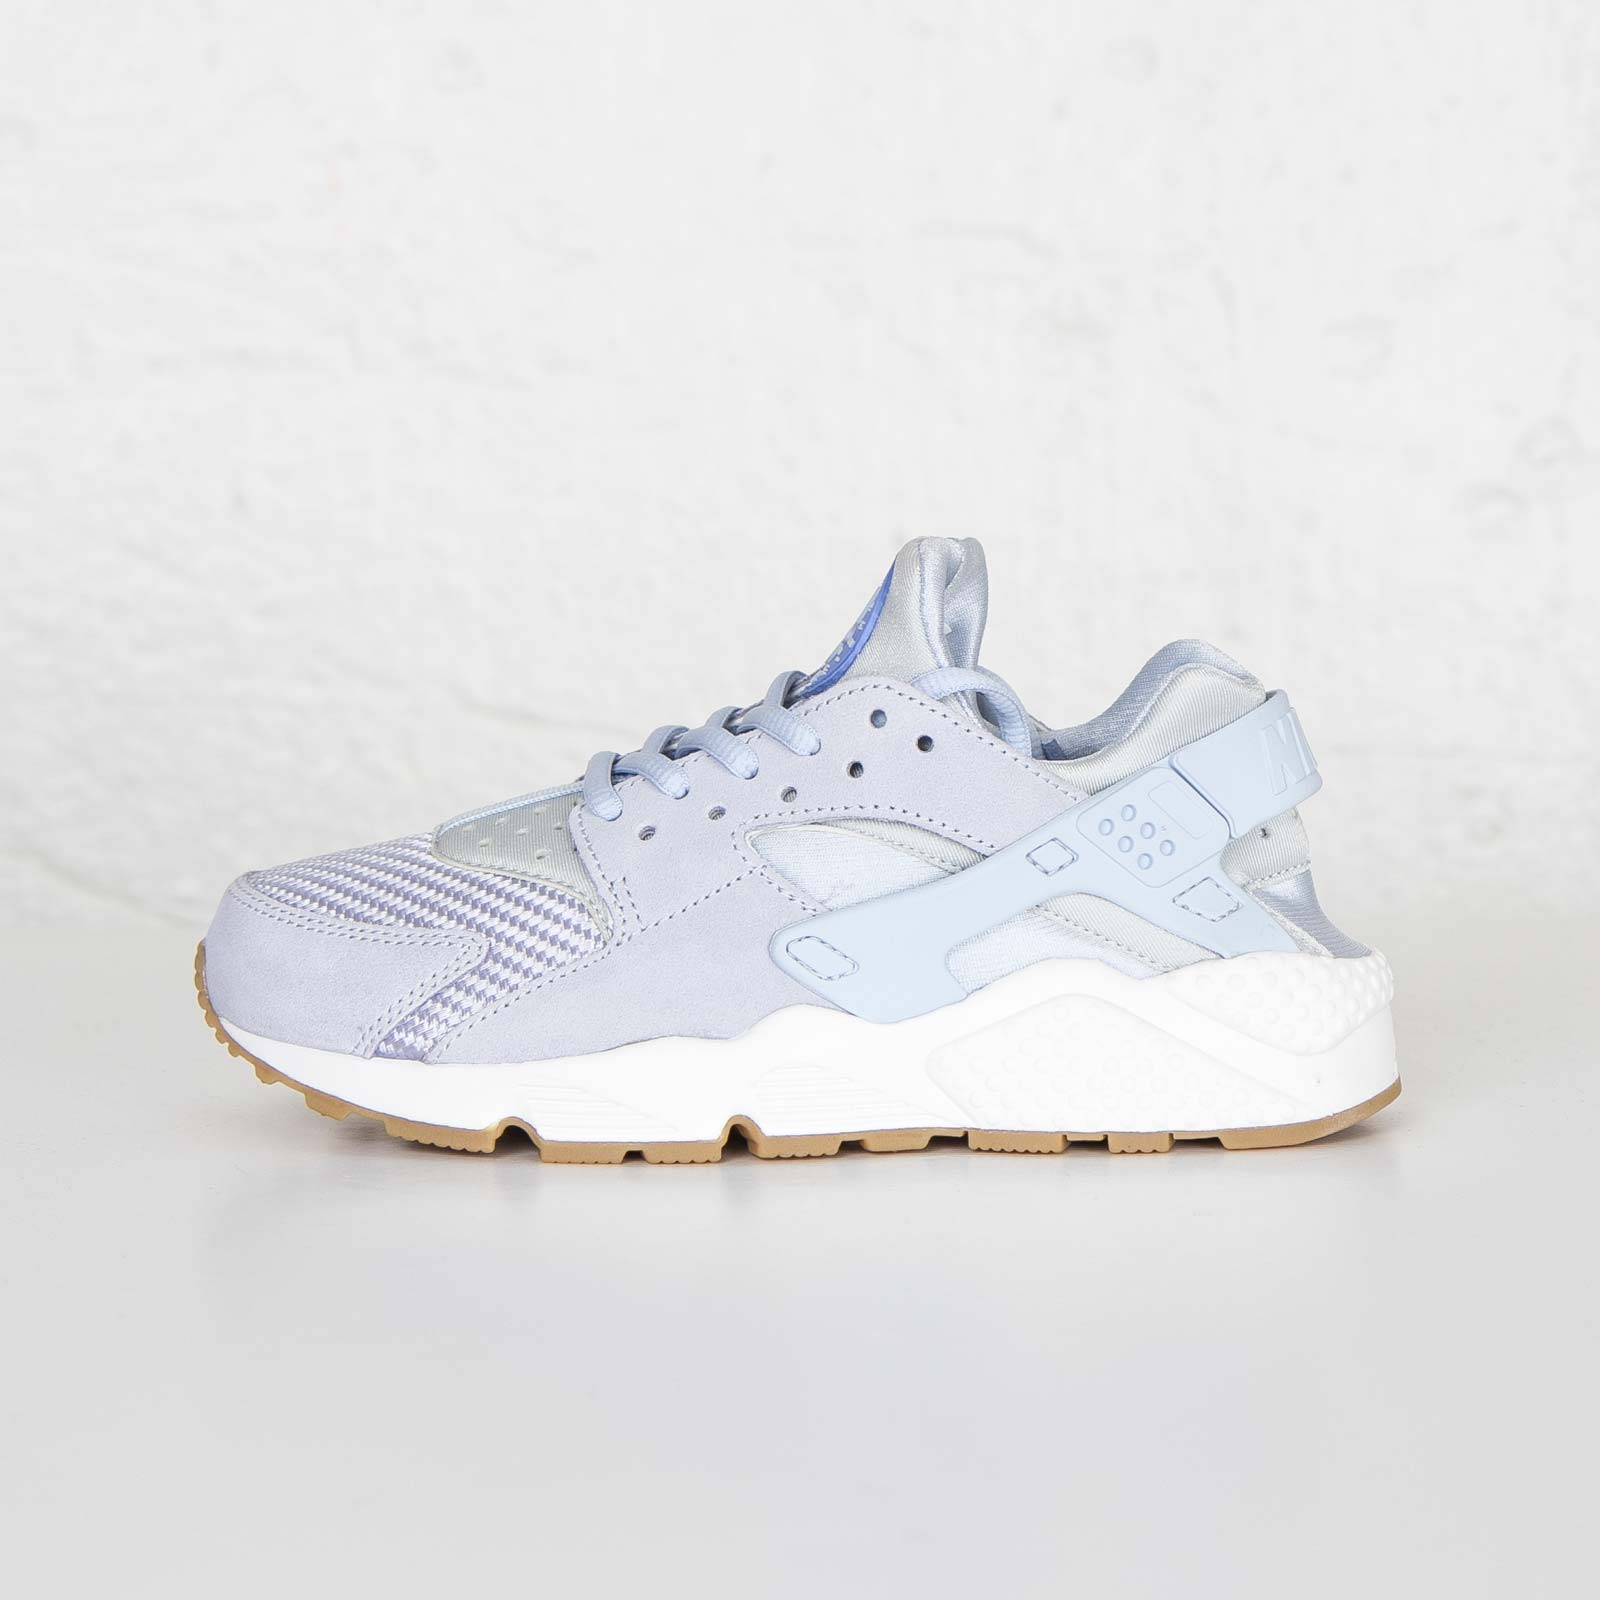 7ff4e2935fdb6 Nike W Air Huarache Run TXT - 818597-400 - Sneakersnstuff